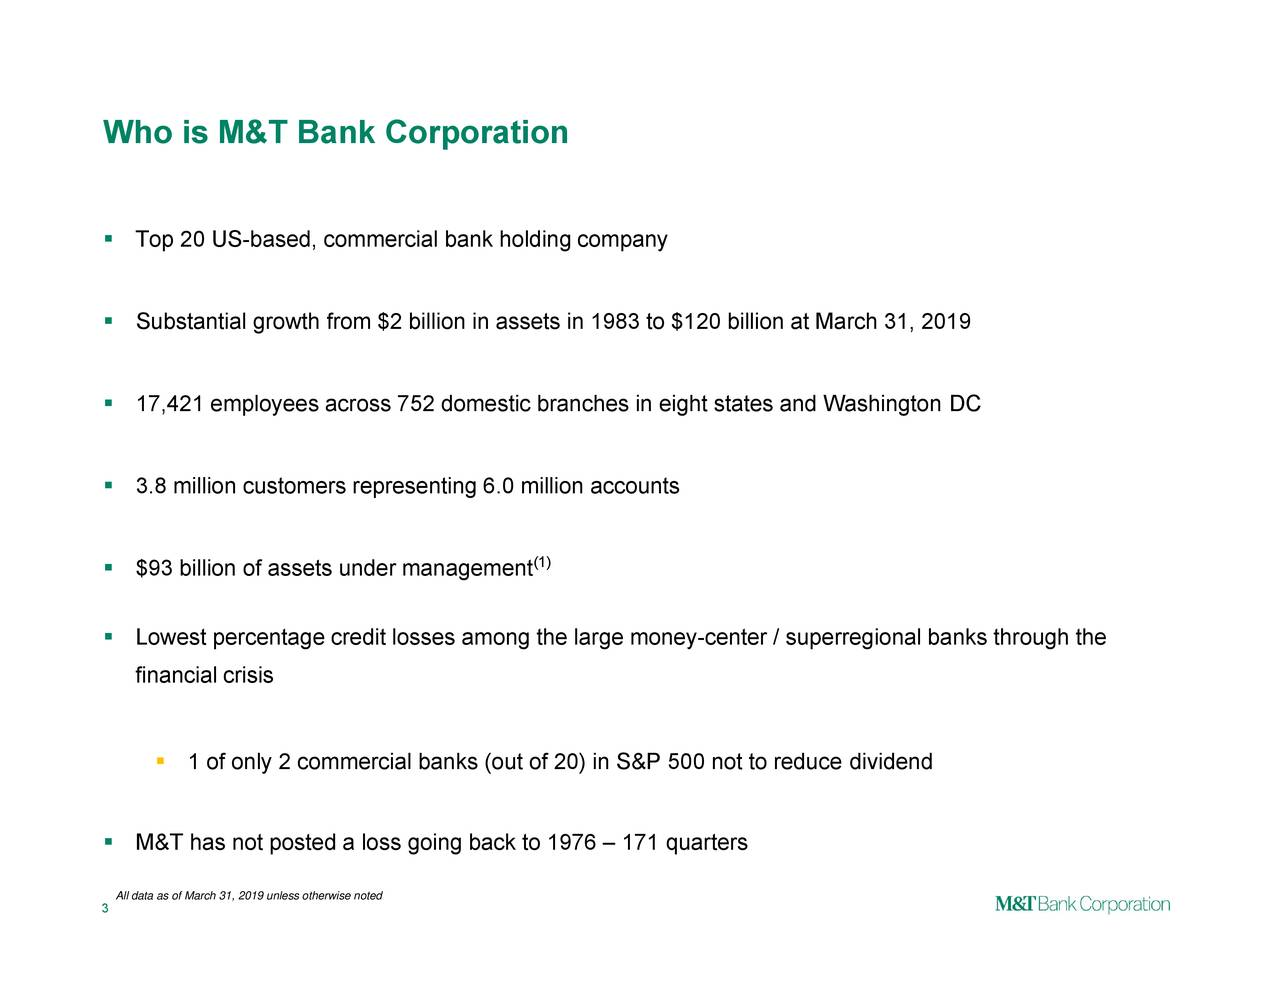 ts in 1983 to $120 billion at March 31, 2019 (1) 2019 unless otherwise noted 1 of only 2 commercial banks (out of 20) in S&P 500 not to reduce dividend  Top 20 US-based, commercial bank holdlLngecotperceyntage crediAll data as of March 31,ng back to 1976 – 171 quarters Who is M&T Bank Corporation    3